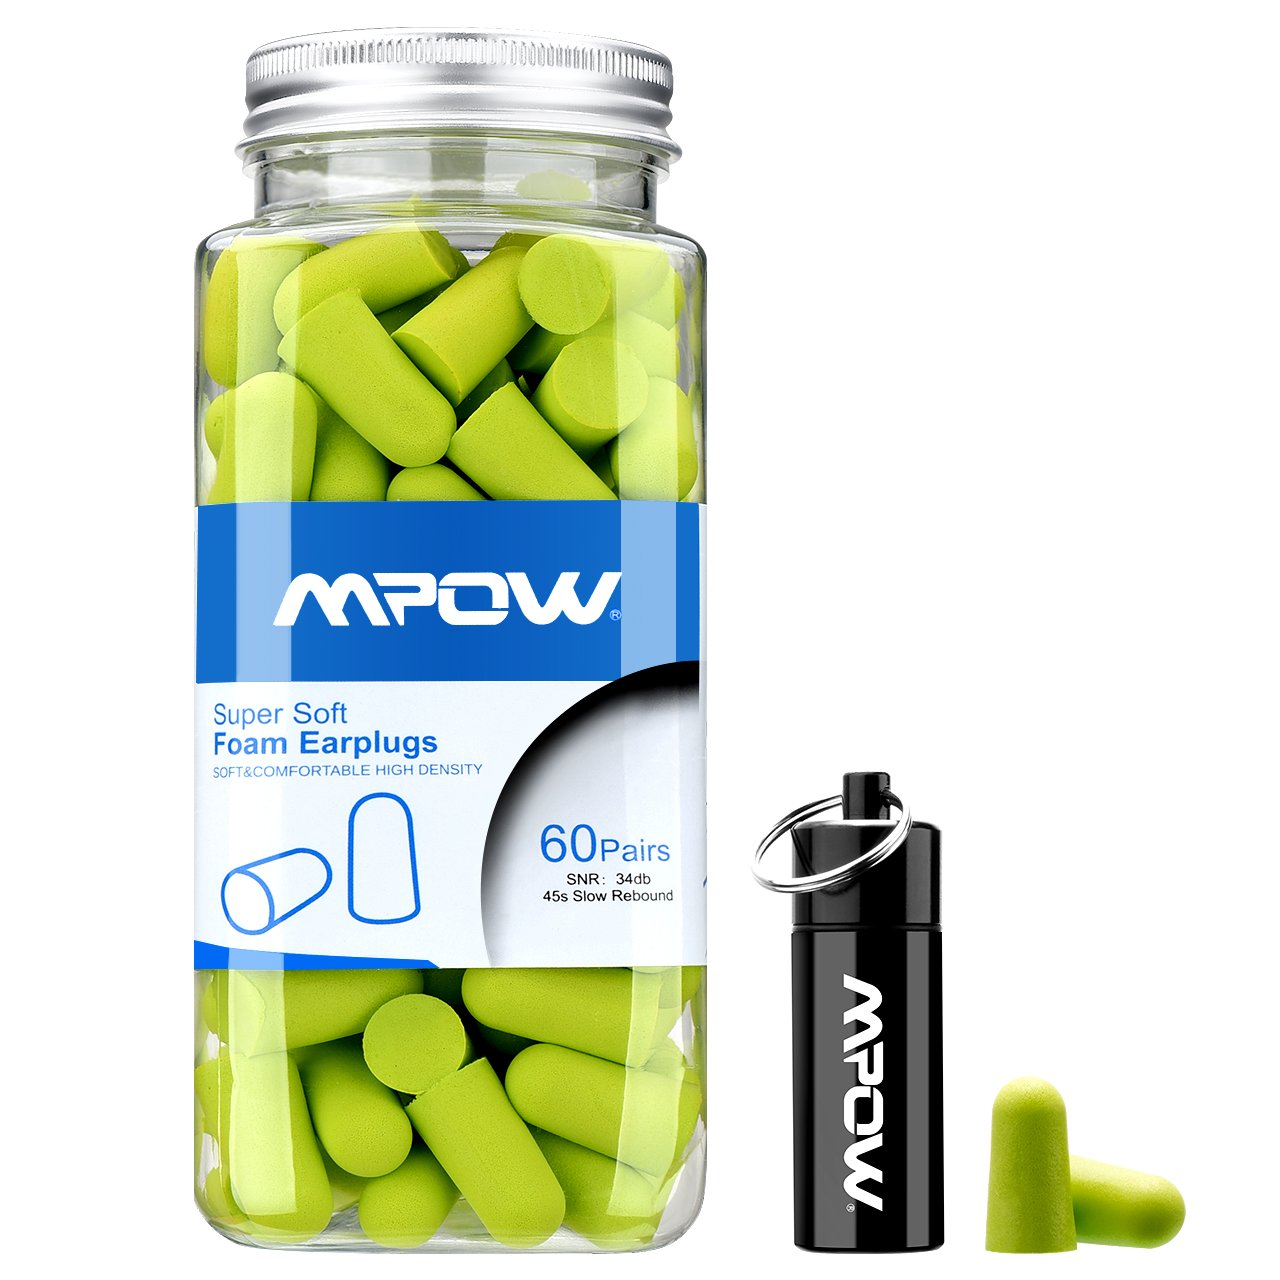 Mpow Foam Earplug, 34dB Highest NRR, 60 Pairs with Aluminum Carry Case, for Hearing Protection, Noise Reduction, Hunting Season, Sleeping, Snoring, Working, Shooting, Travel, Concert by Mpow (Image #2)